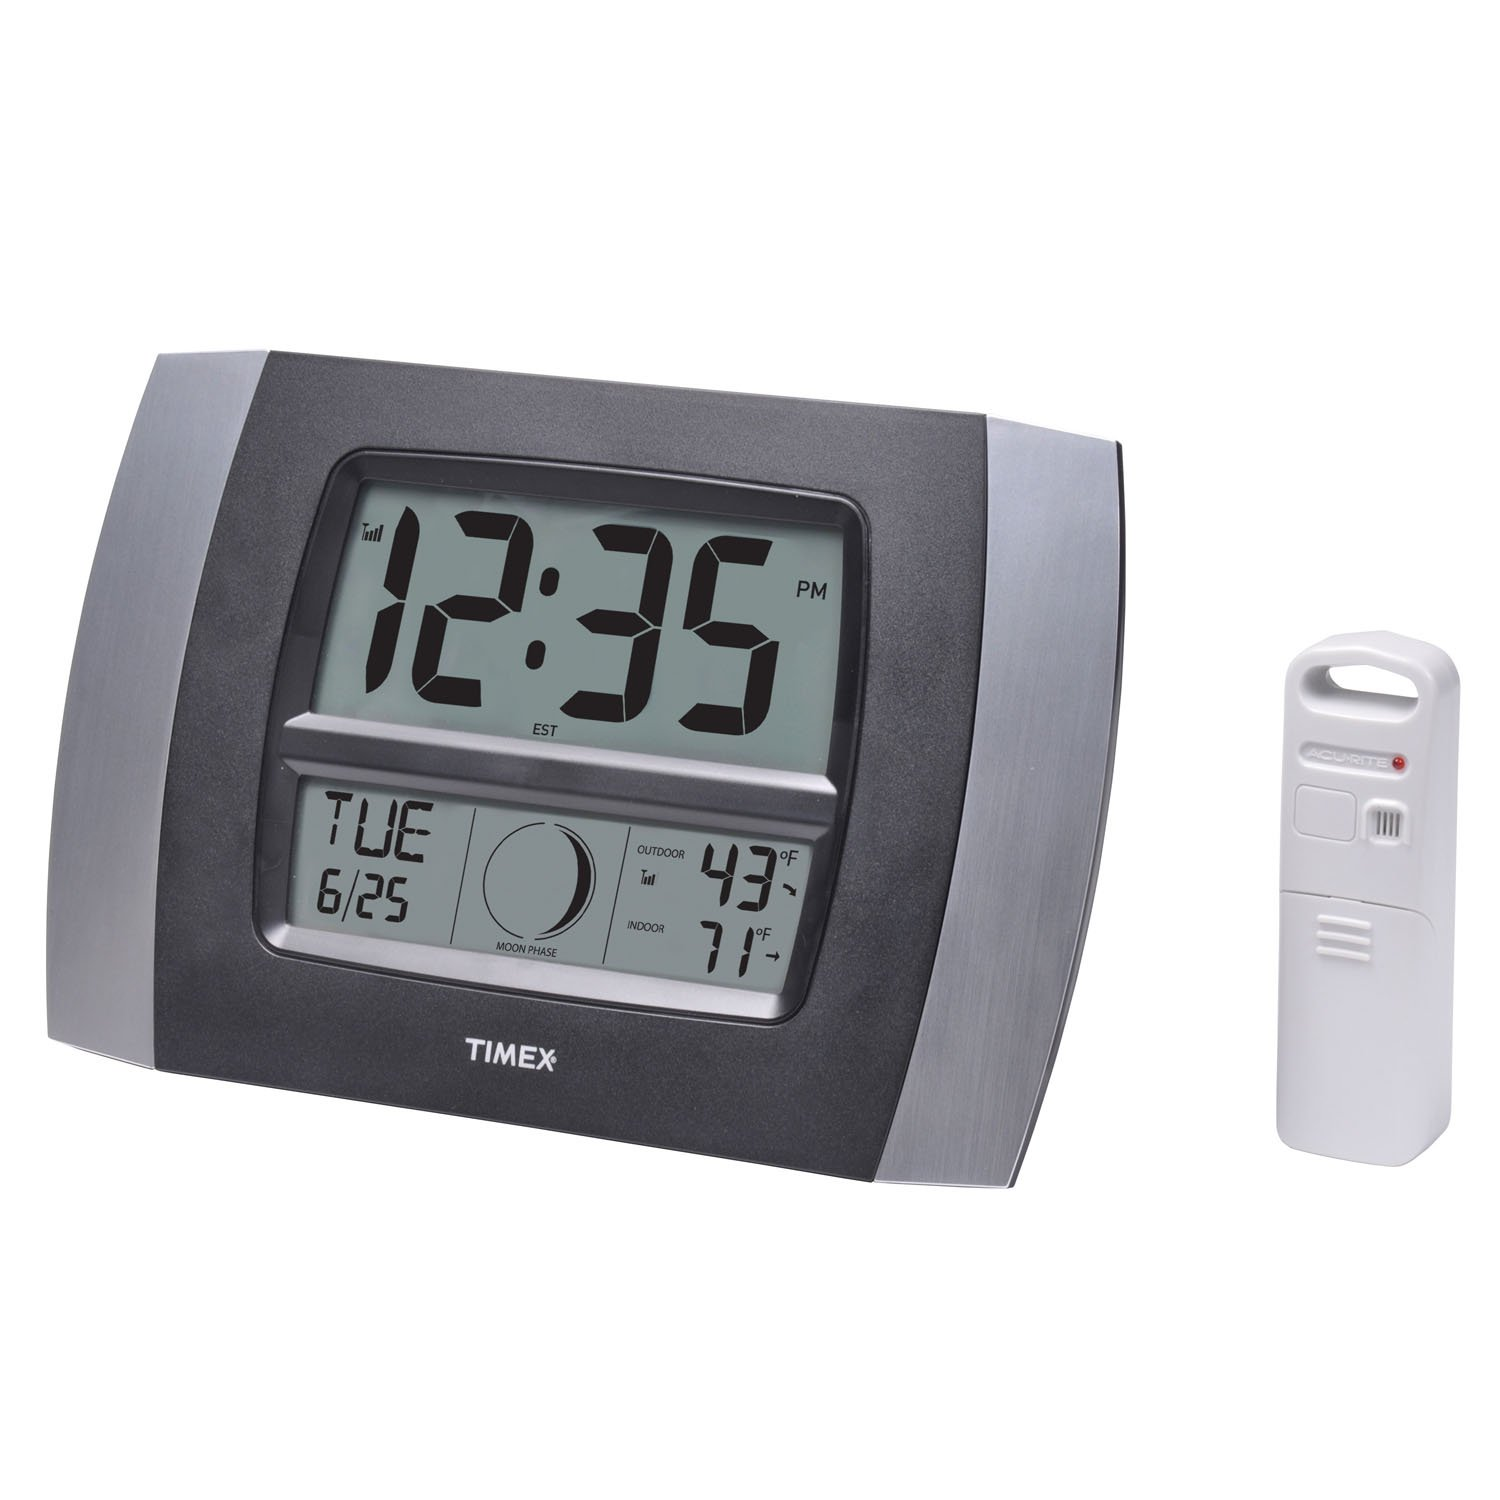 Timex 75331T Atomic Digital Clock with Temperature, Moon Phase & Calendar, 11.5''